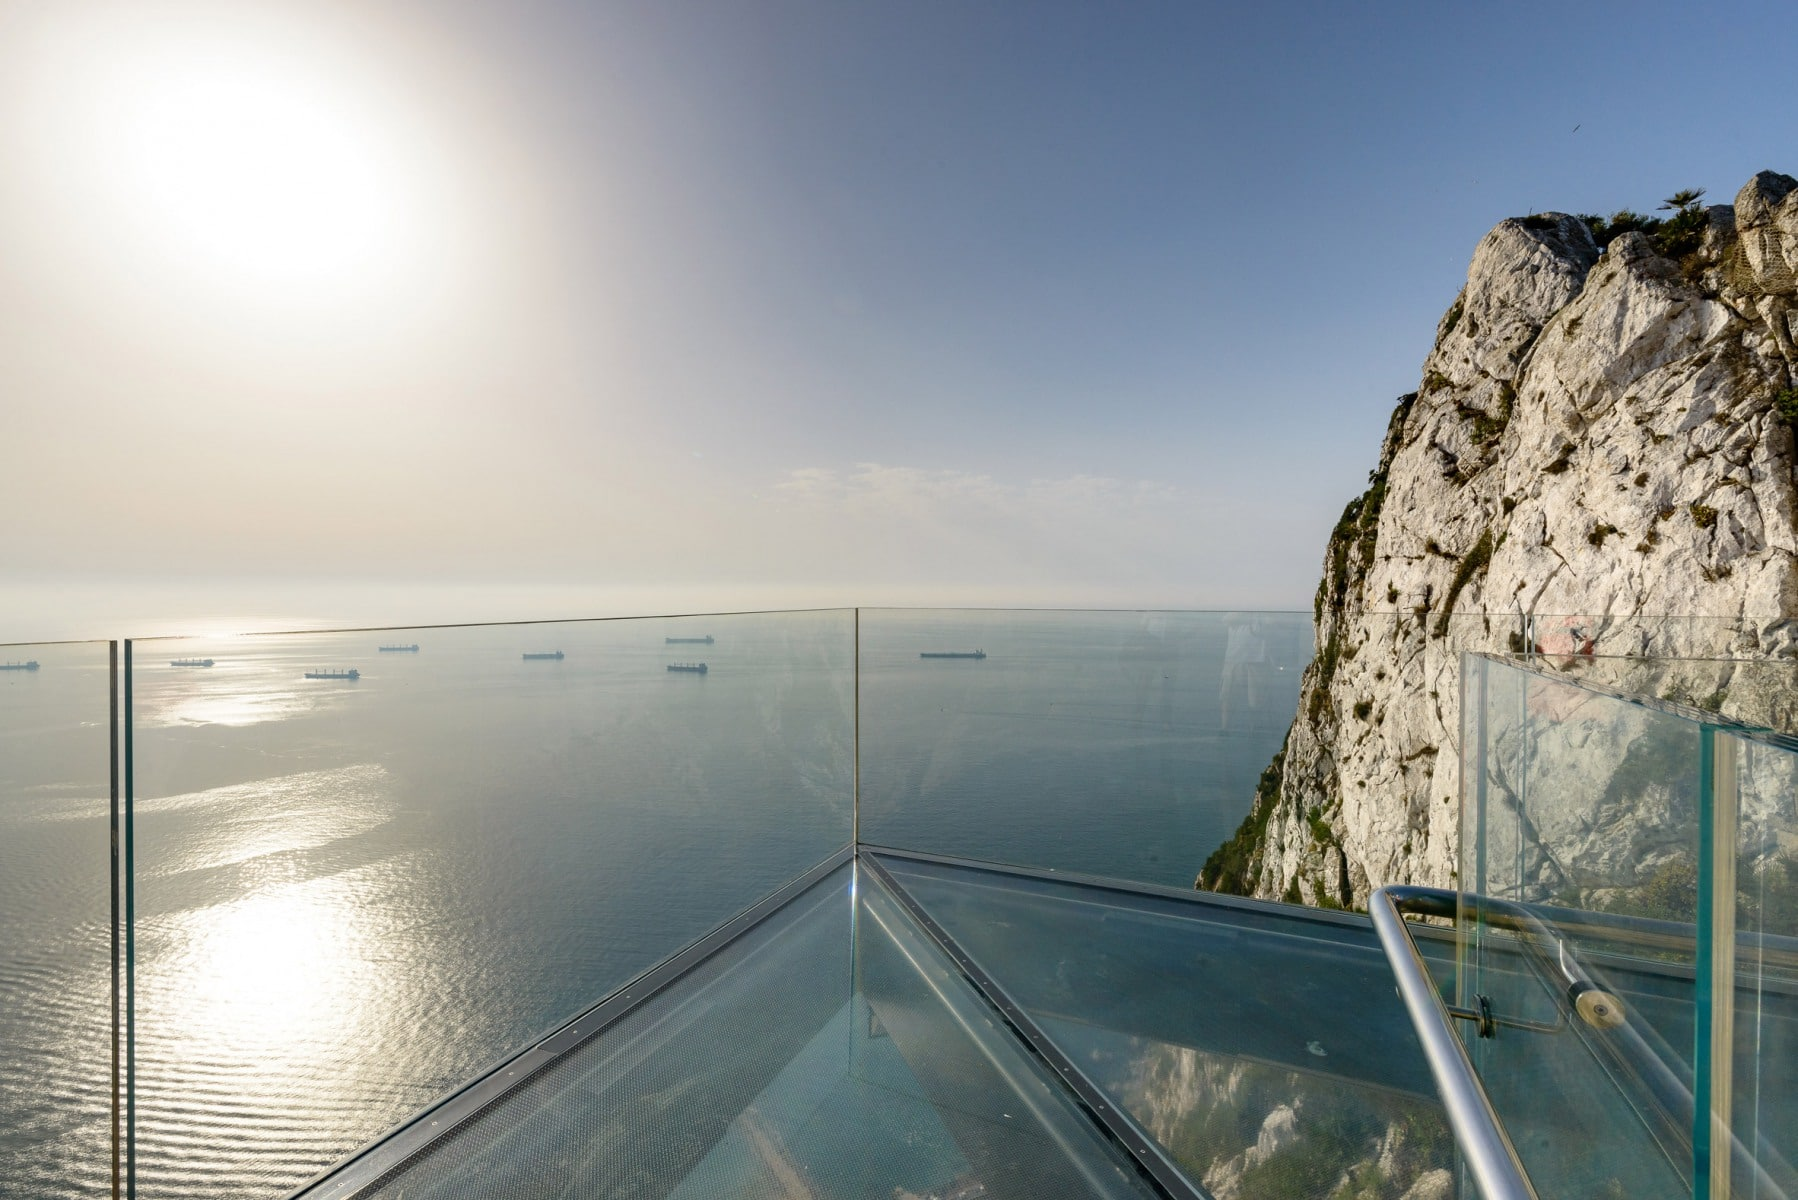 skywalk-gibraltar-3-photo-taken-for-bovis-koala-jv-by-meteogibs-photographer-stephen-ball_42273842695_o